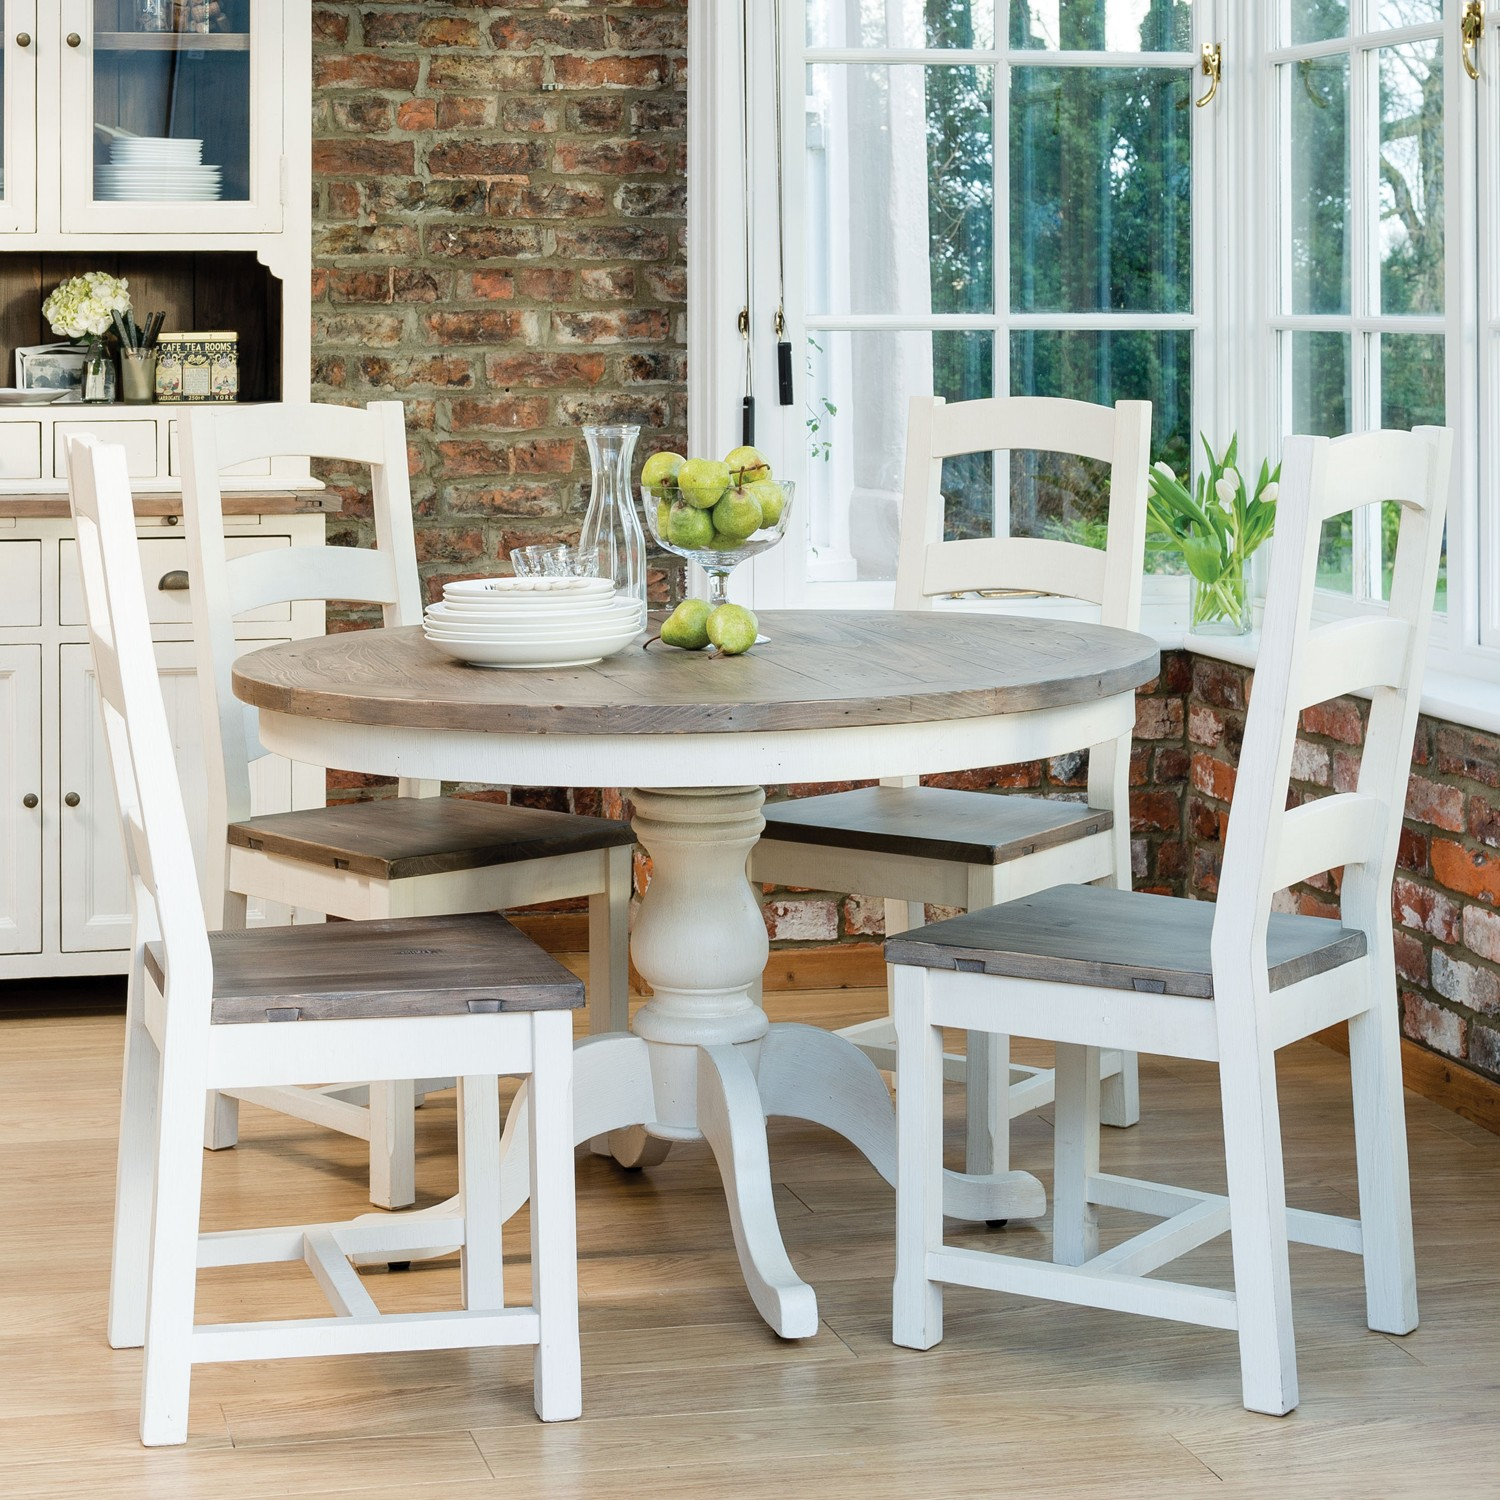 kitchen table and 6 chairs uk outdoor lounge chair cotswold circular four wooden dining set